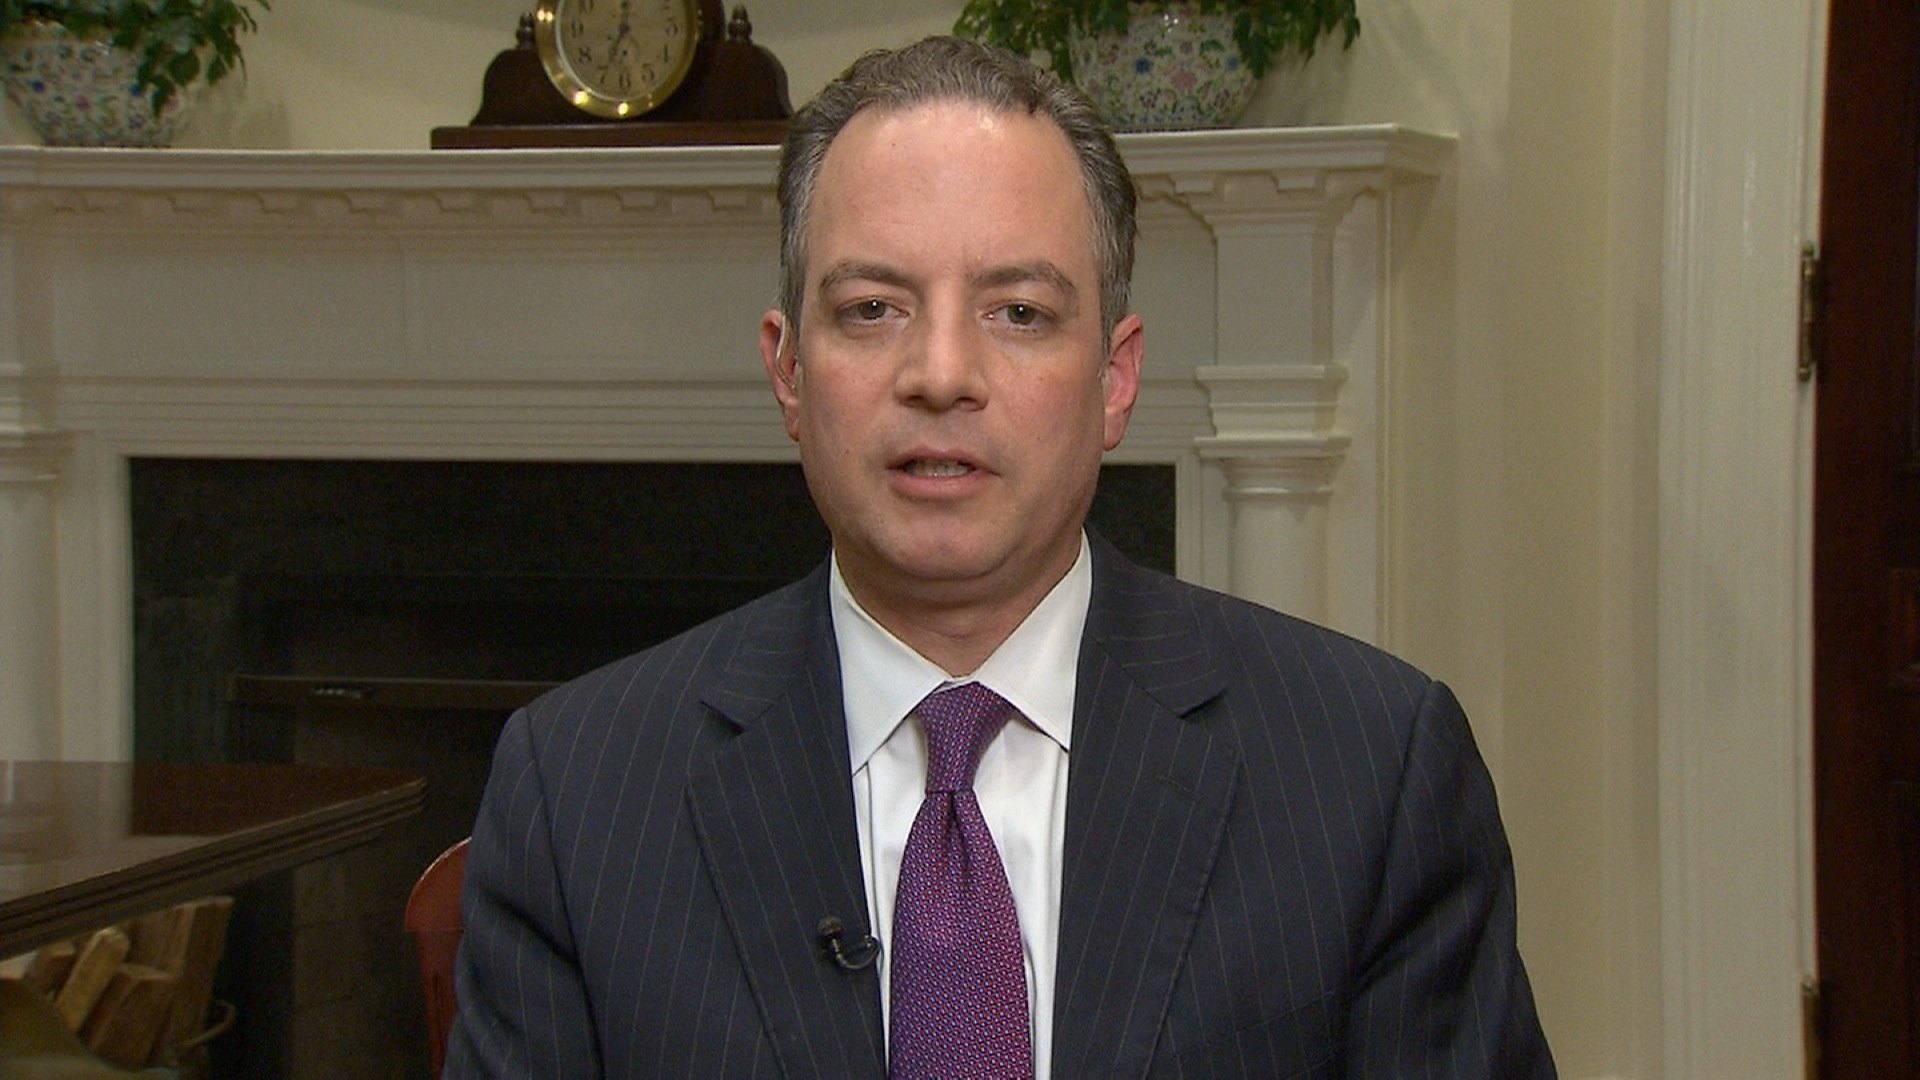 Reince Priebus stands by Trump in first interview since White House ouster